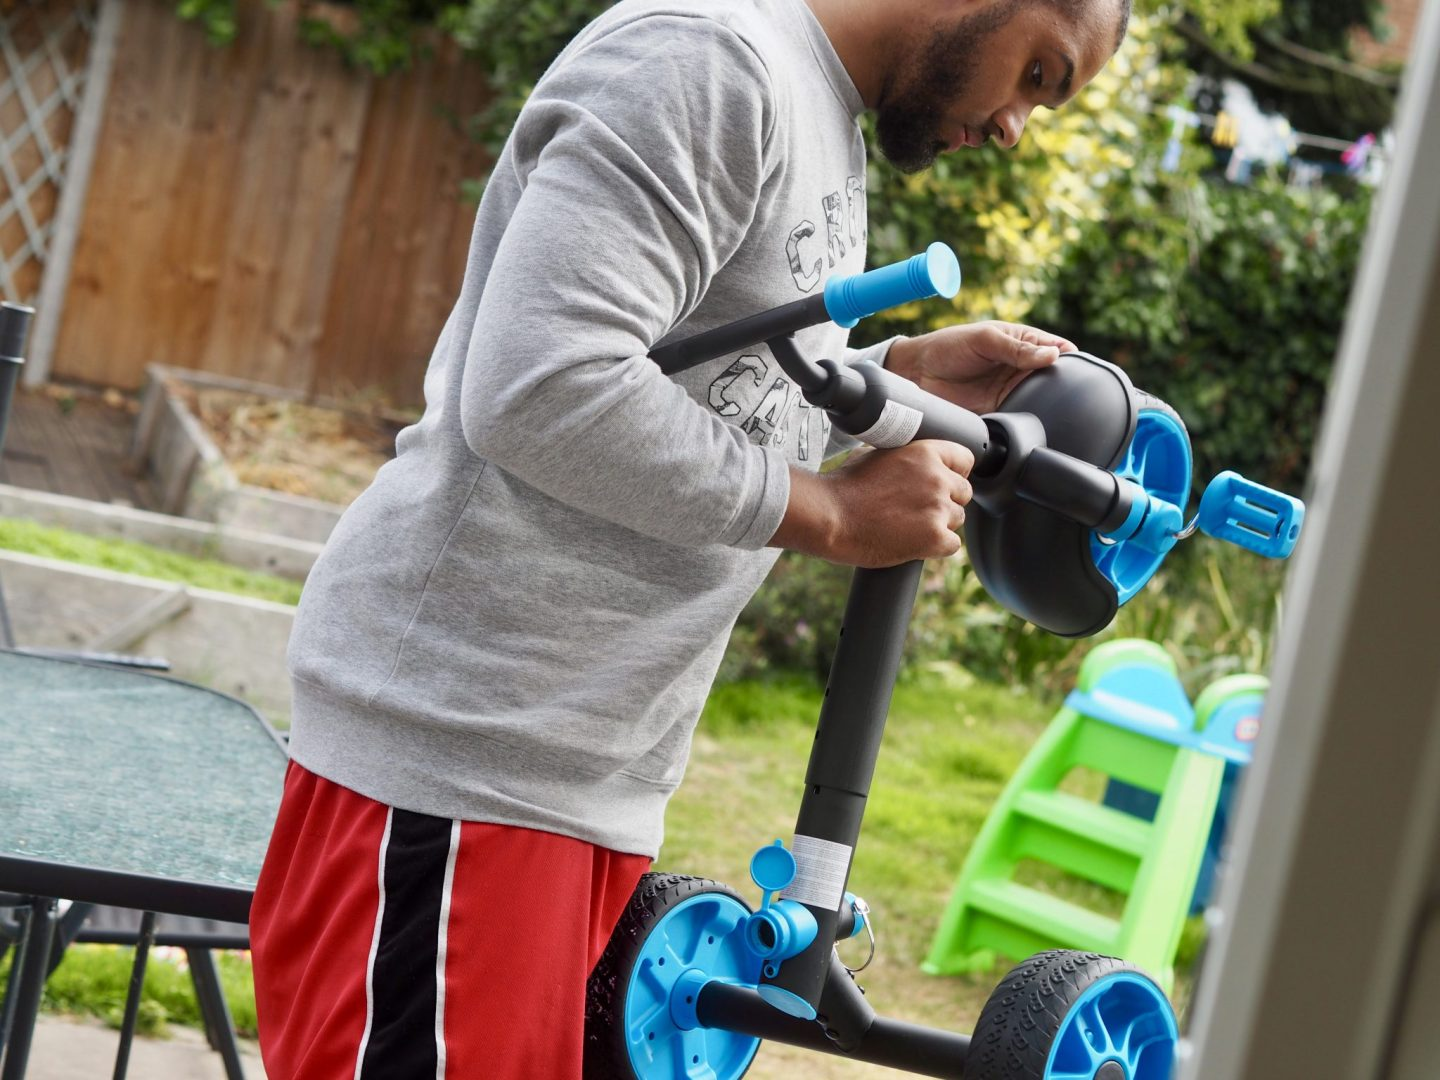 Setting up a Little Tikes Trike